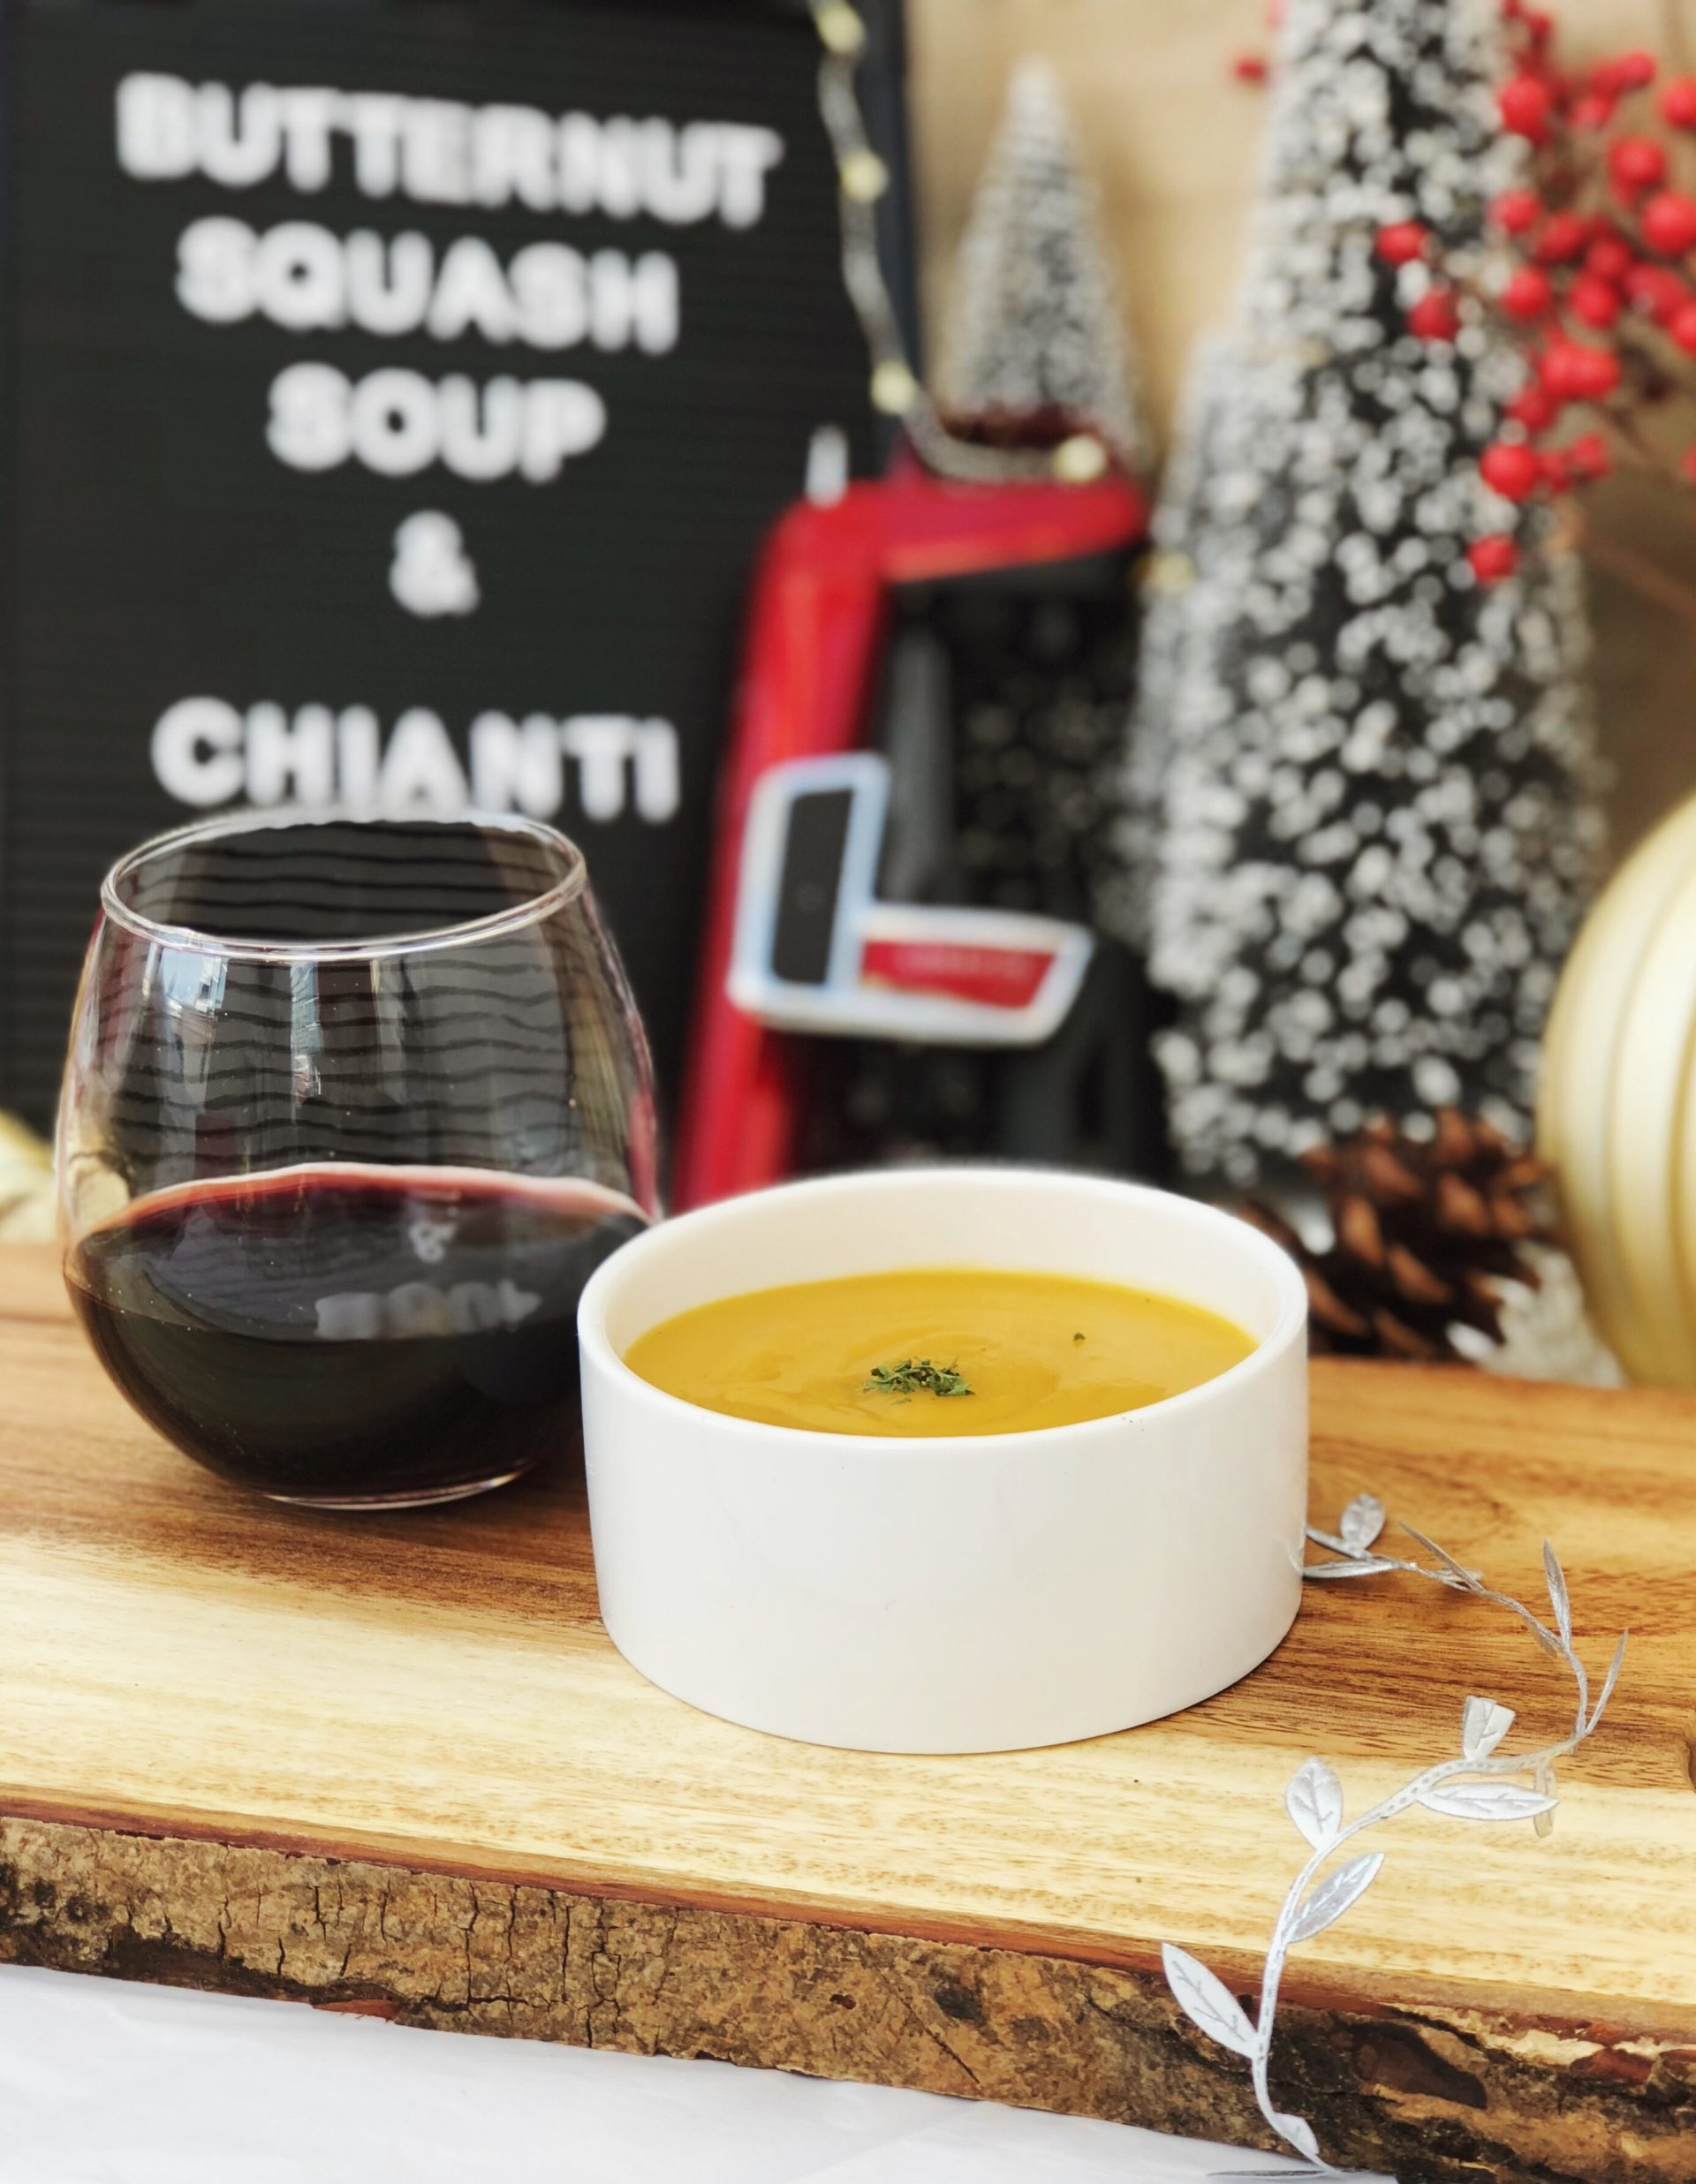 christmas wine pairings butternut squash soup and chianti